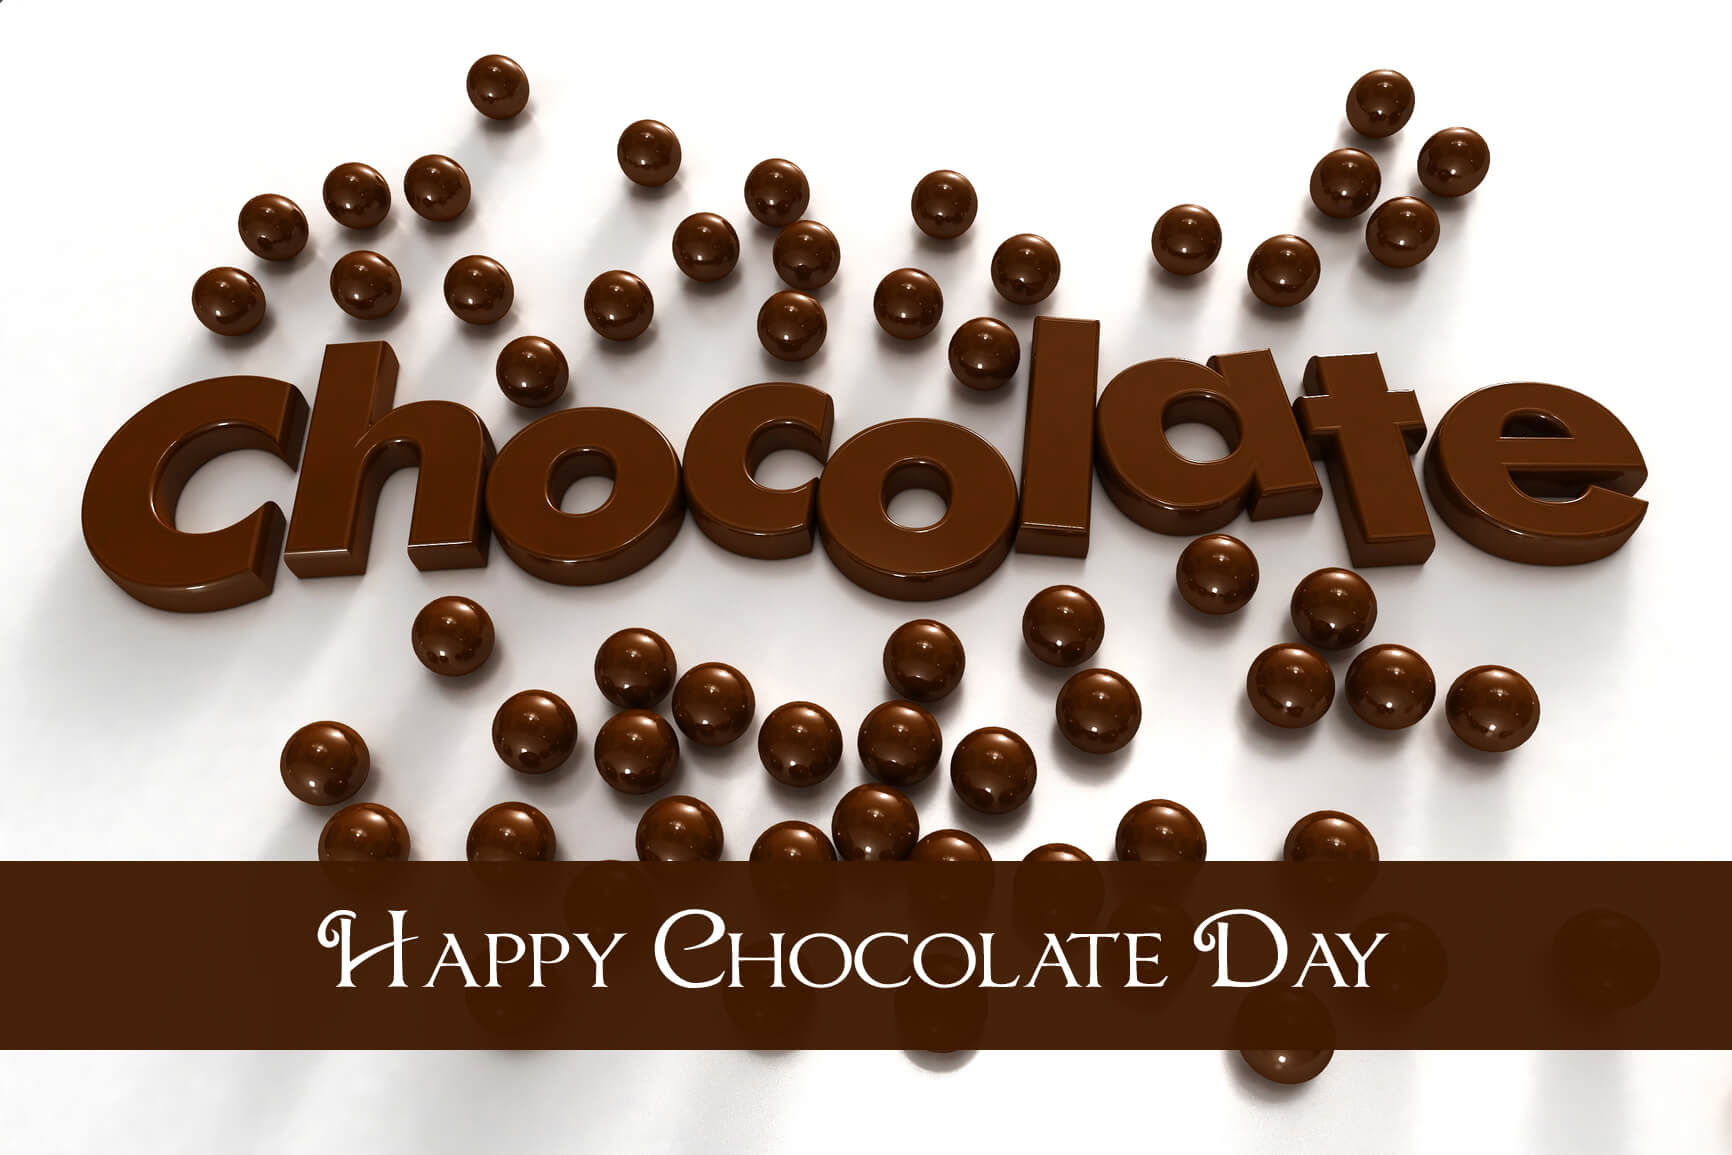 happy chocolate day valentine girl friend love whats app facebook hd wallpaper